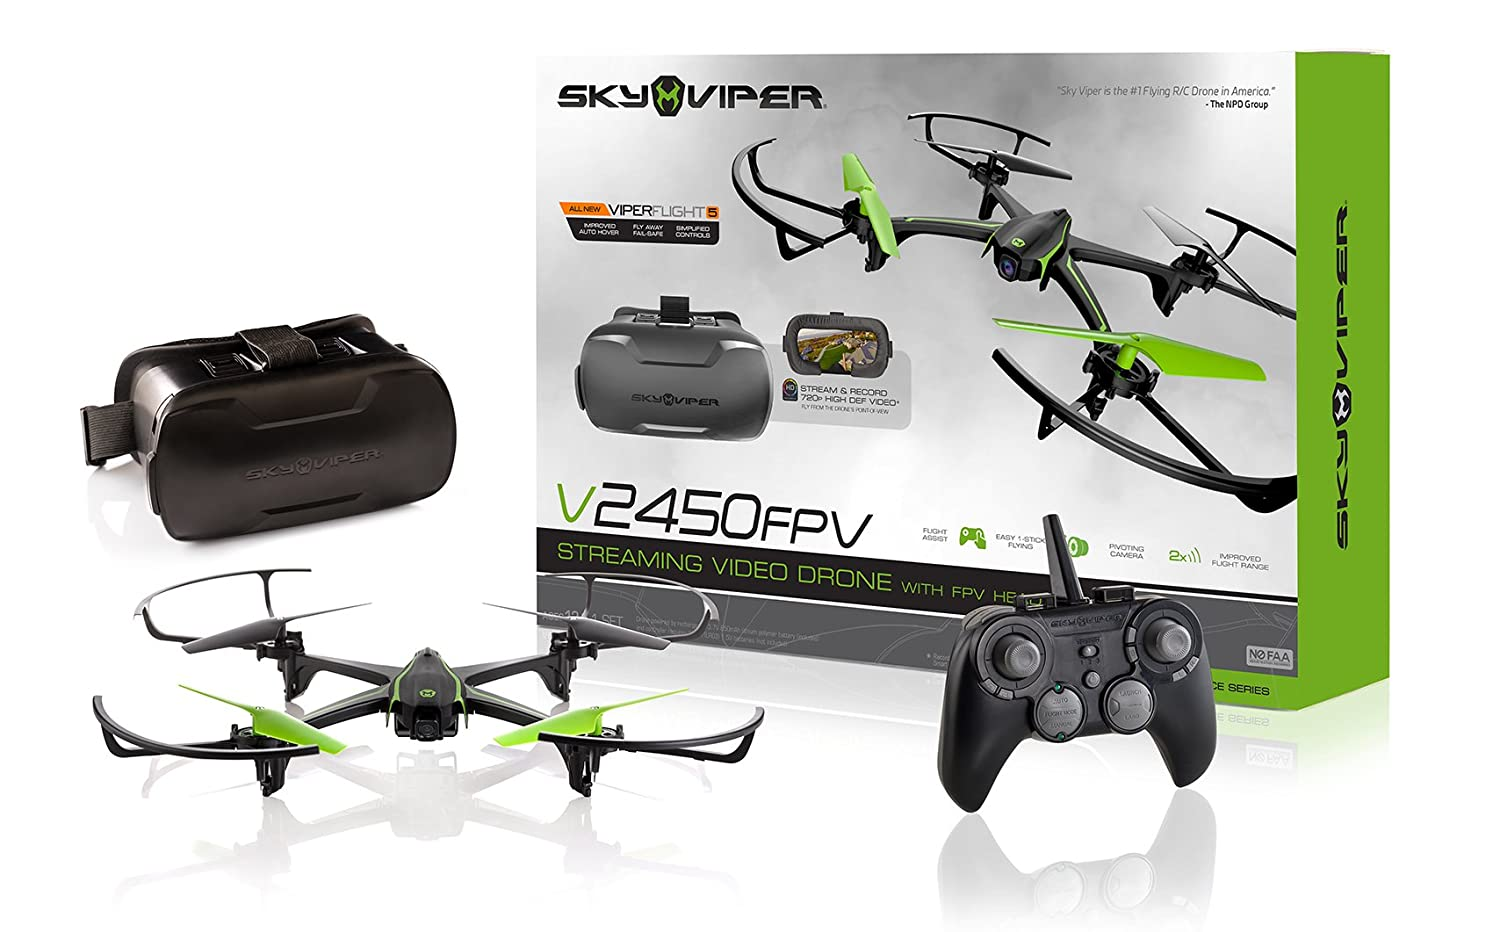 Amazon.com: Sky Viper v2450FPV Streaming Drone with Fpv Goggles ...